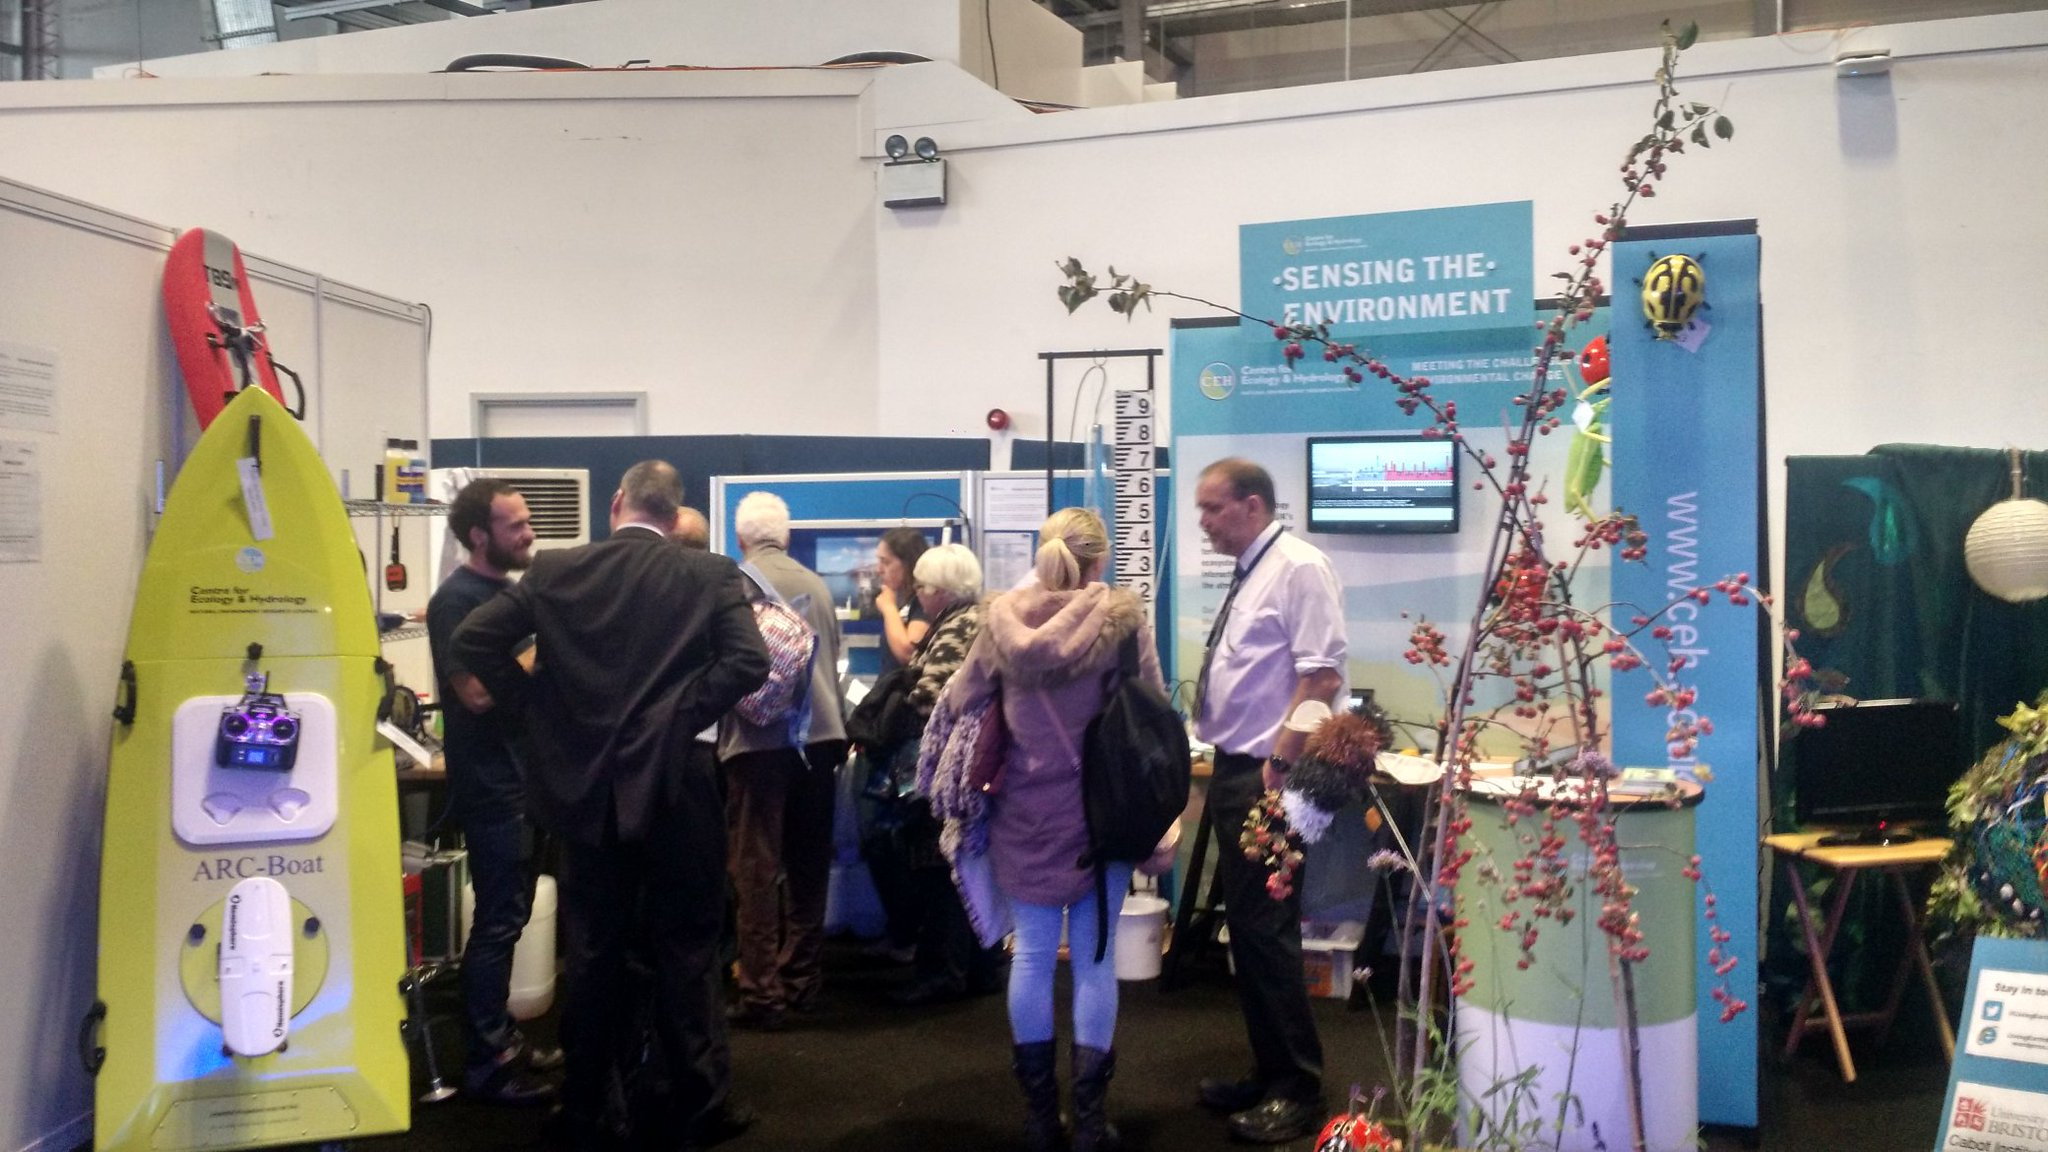 Looking busy this afternoon on @CEHScienceNews Sensing the Environment stand at #nercintotheblue #scicomm https://t.co/Z36QSP5AjF